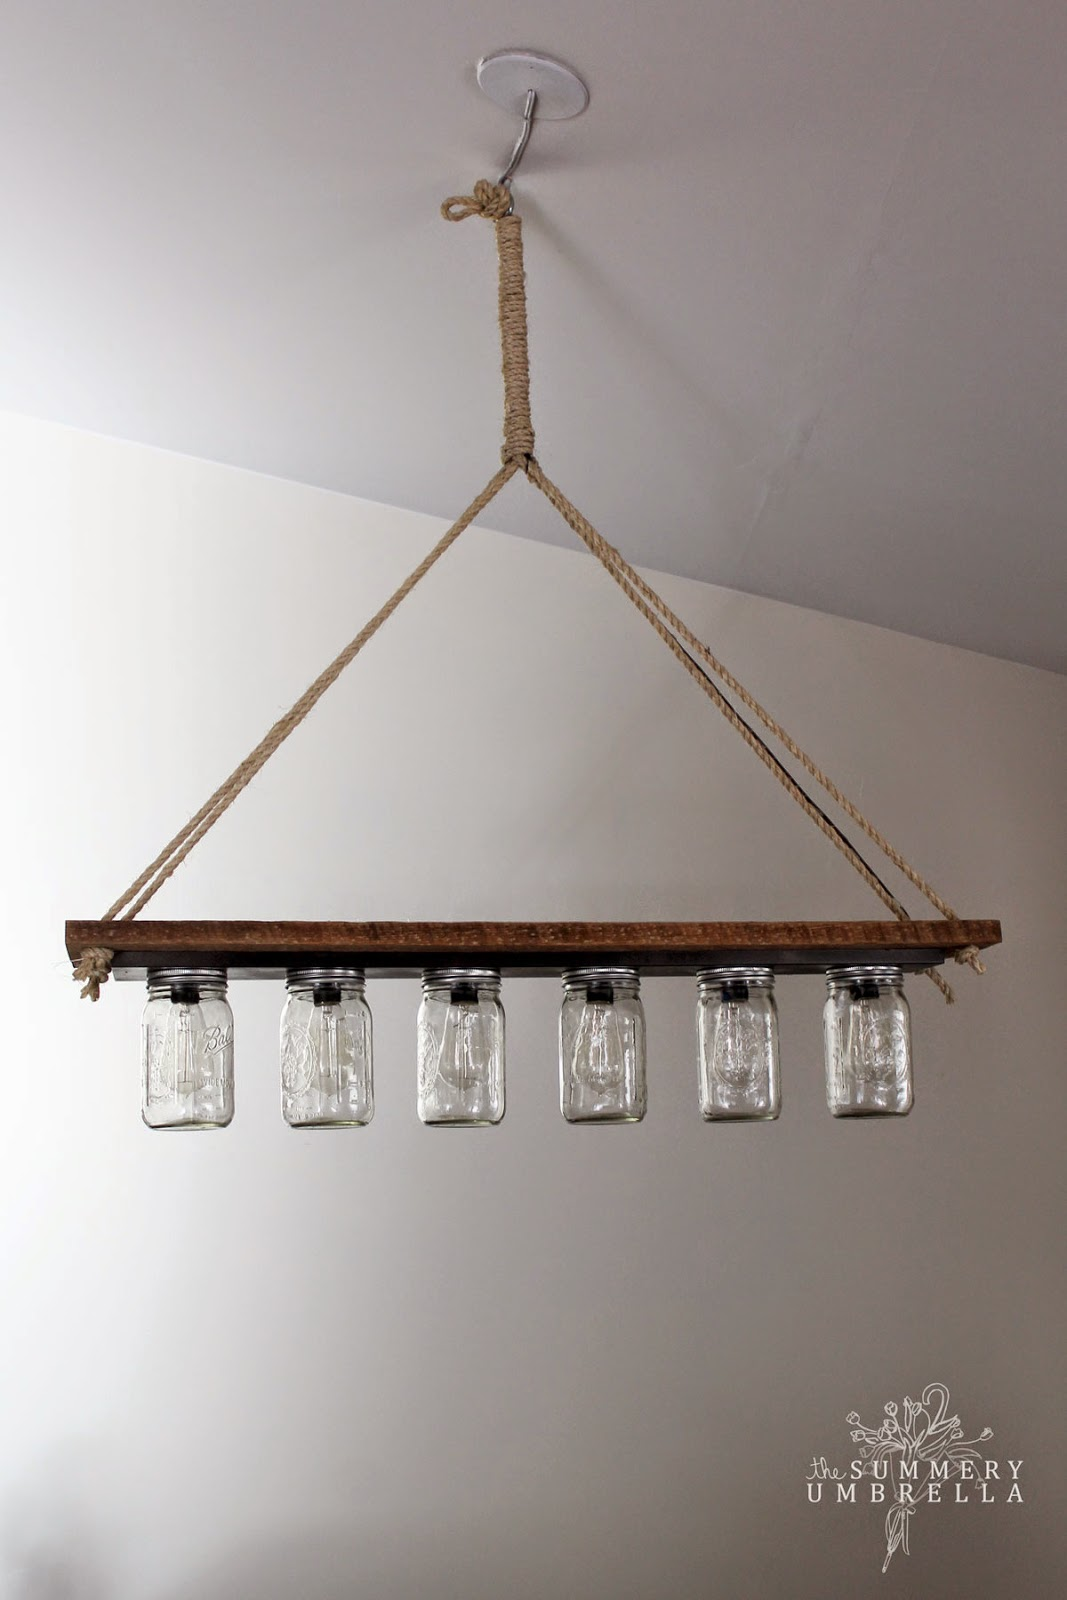 Remodelaholic how to make a pallet wood light box mason jar pendant chandelier light from bathroom vanity light strip the summery umbrella featured on arubaitofo Image collections